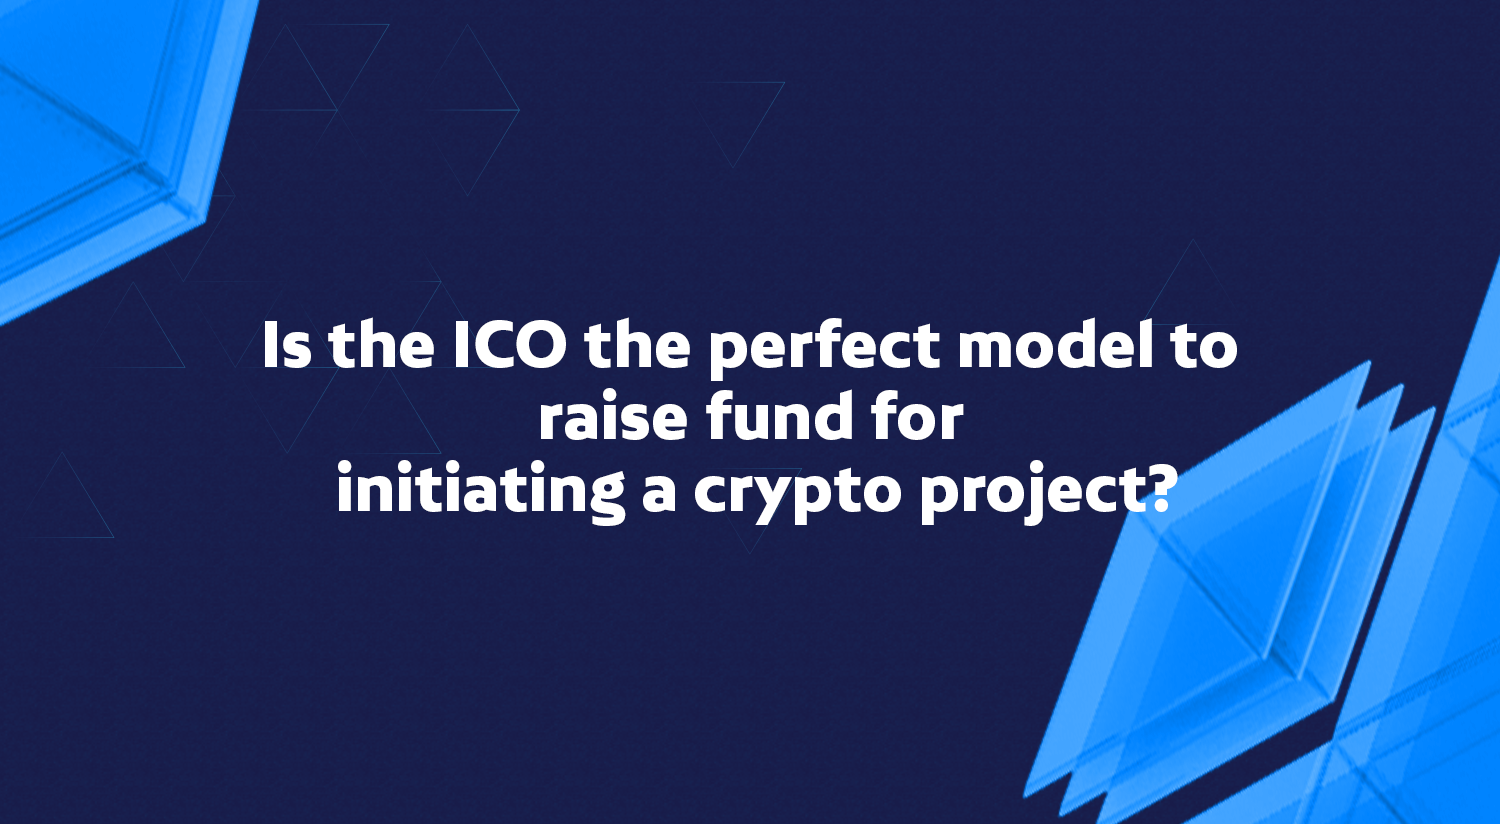 Is the ICO the perfect model to raise fund for initiating a crypto project